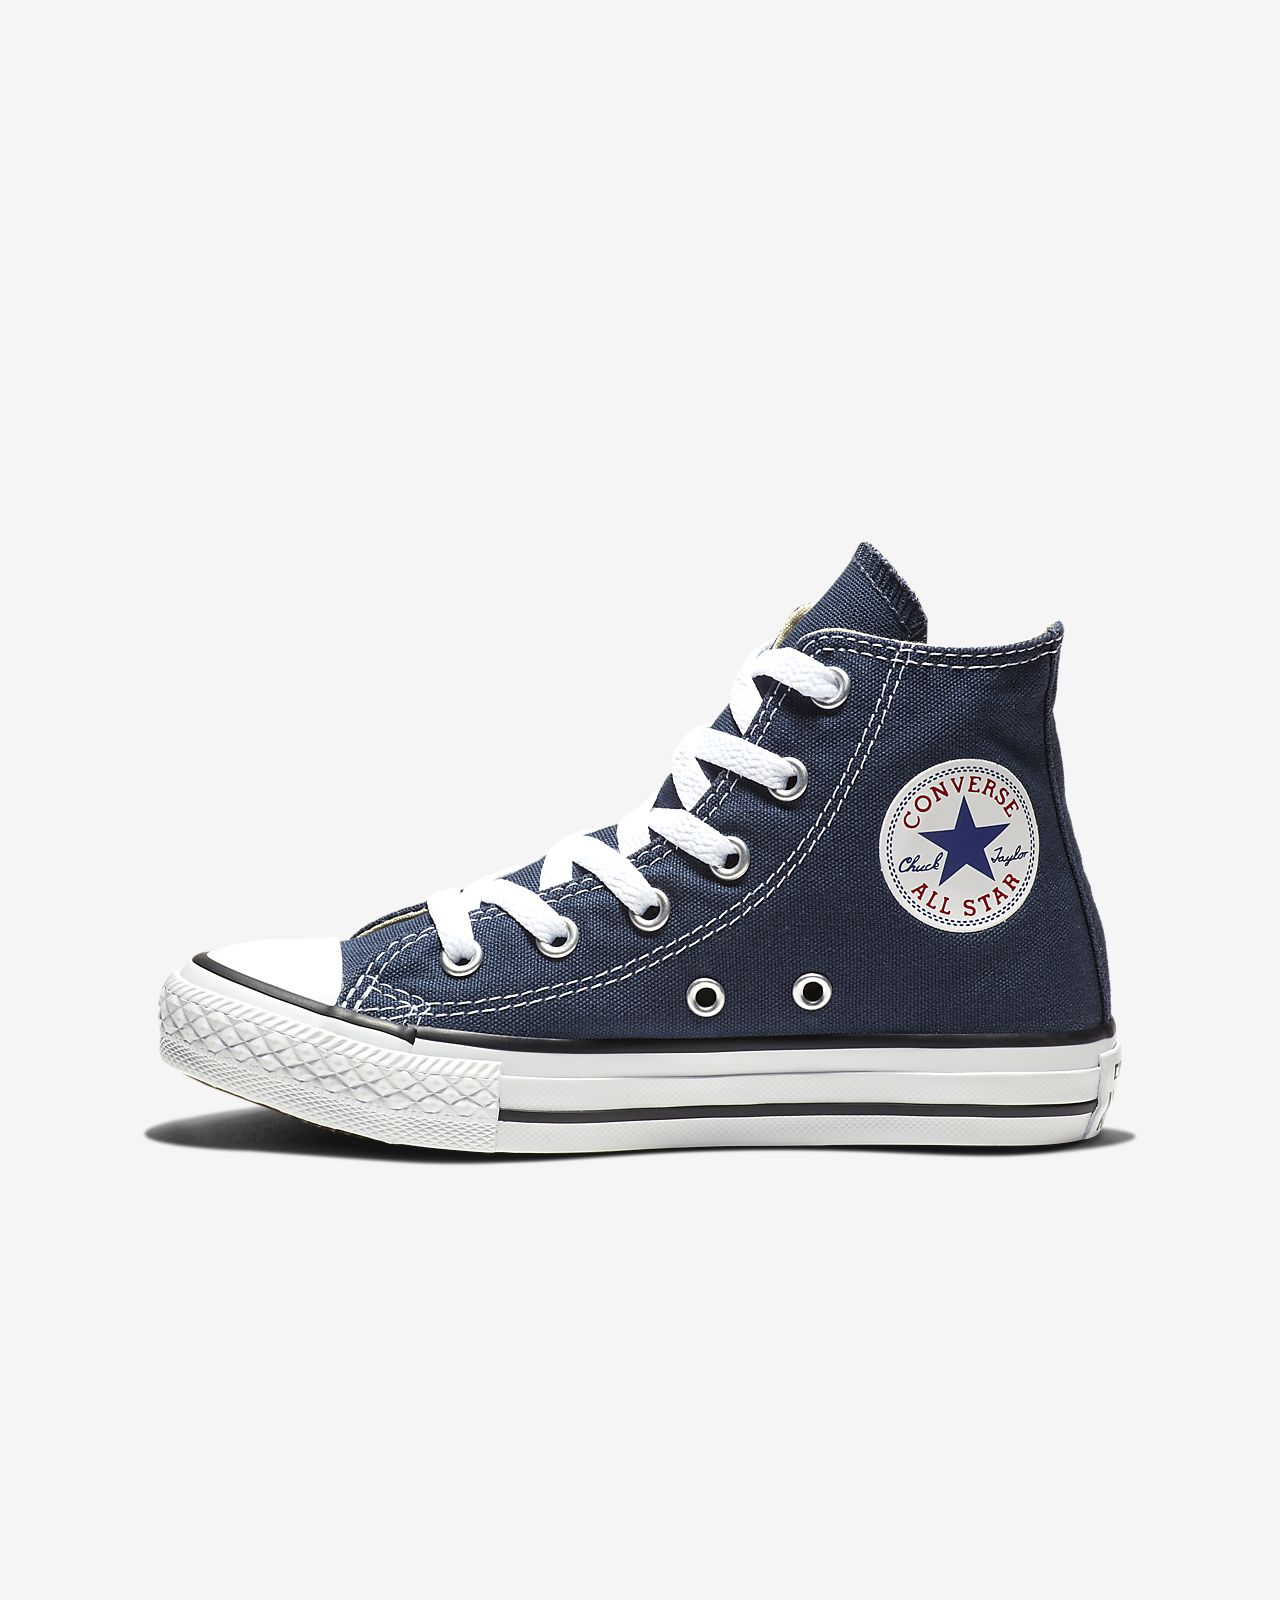 4c9eeb40540f Converse Chuck Taylor All Star High Top (10.5c-3y) Little Kids  Shoe ...